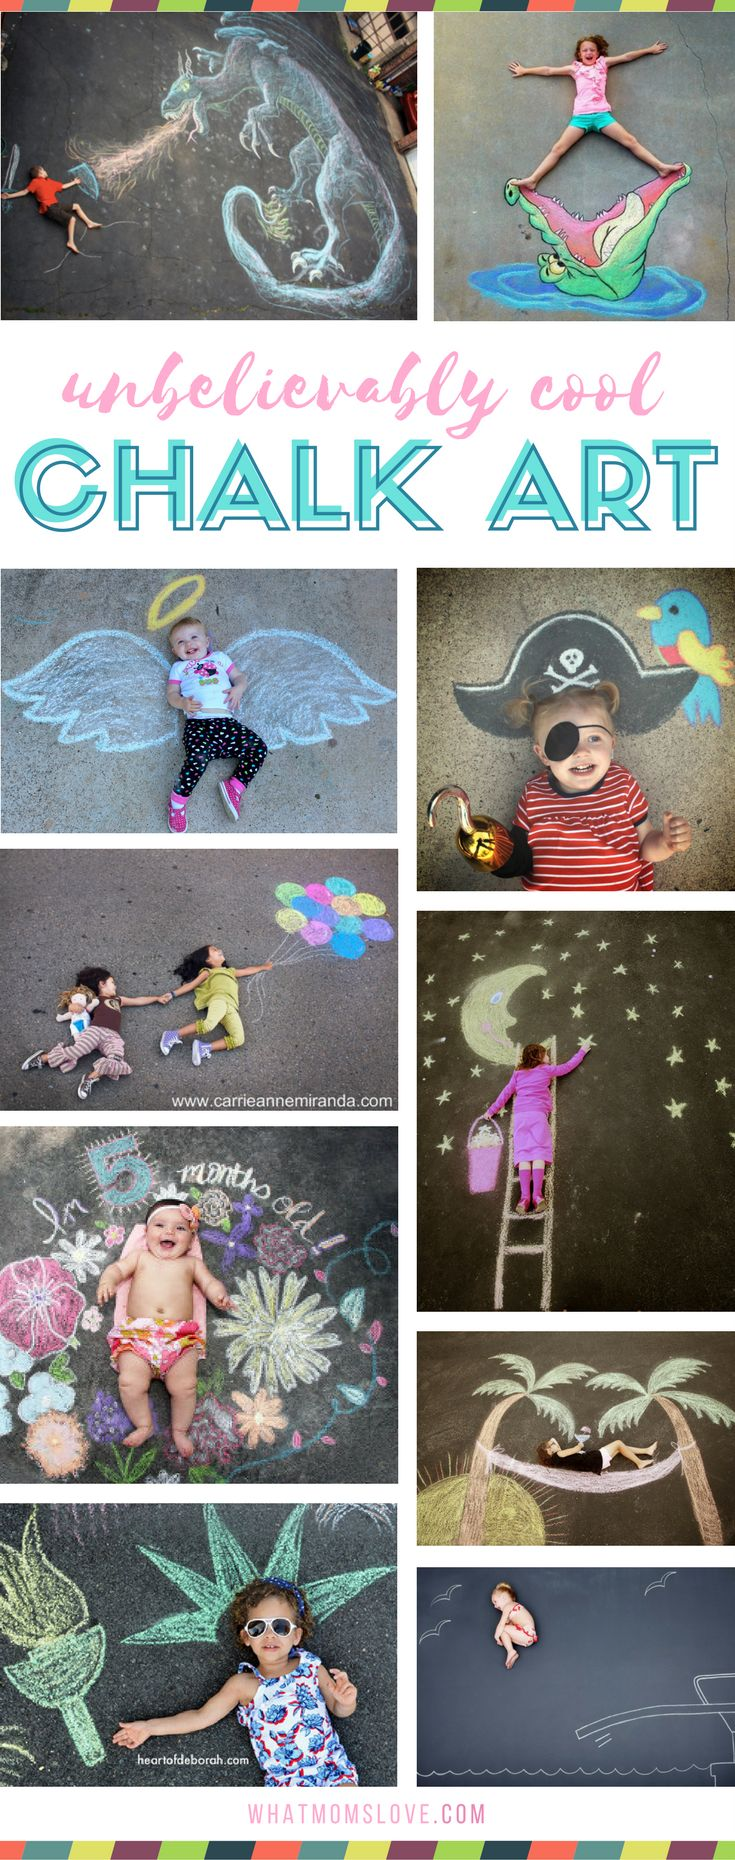 Sidewalk Chalk Art Ideas for Kids   These creative driveway illusions are totally awesome! Easy drawings to incorporate your baby, child or teen. Plus tons of other sidewalk chalk games and activities for outdoor summer fun.